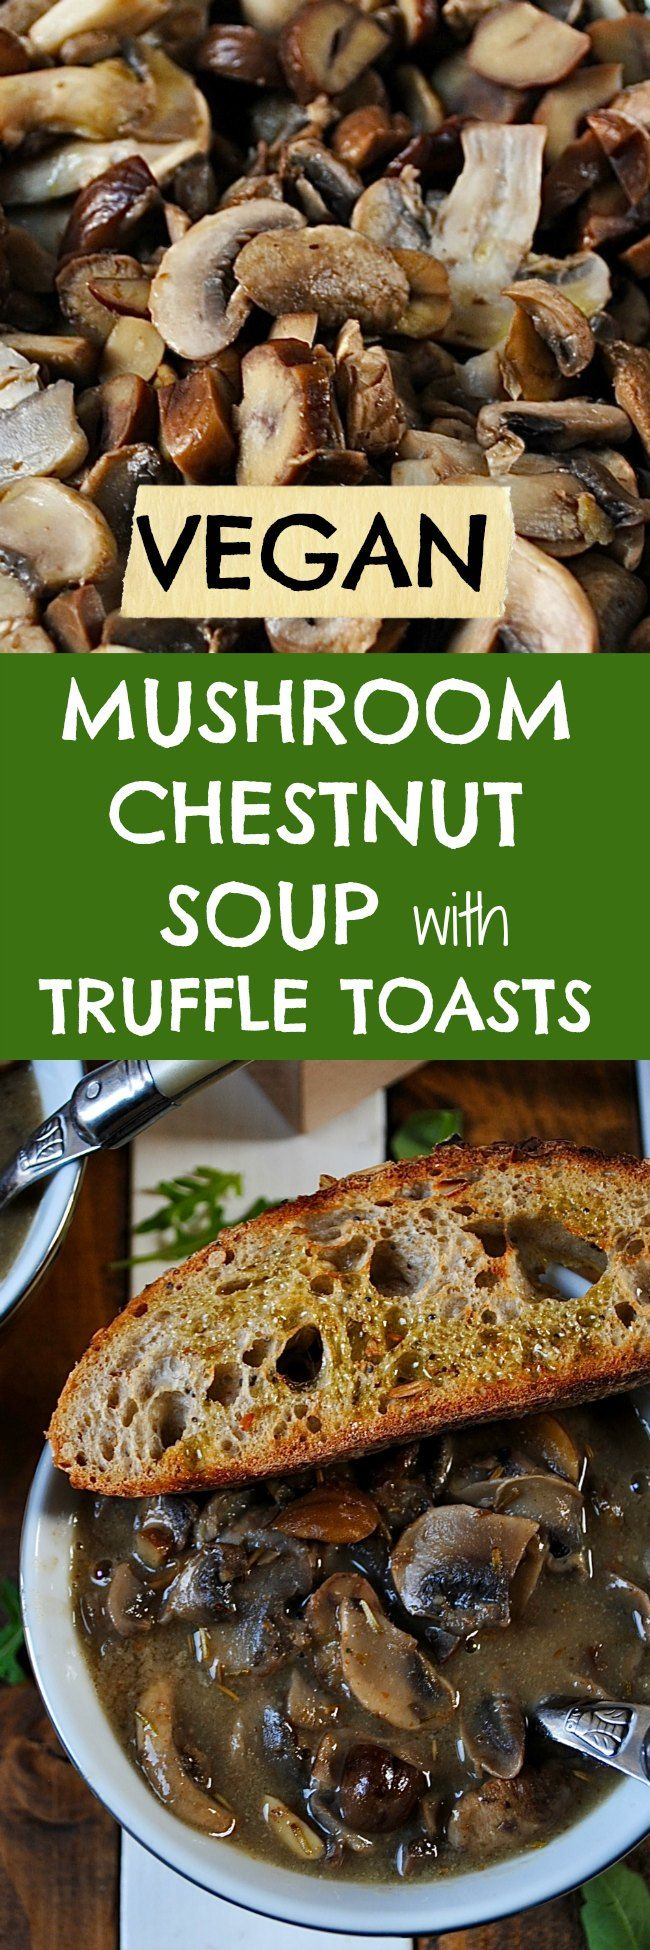 Mushroom Chestnut Soup with Truffle Toasts